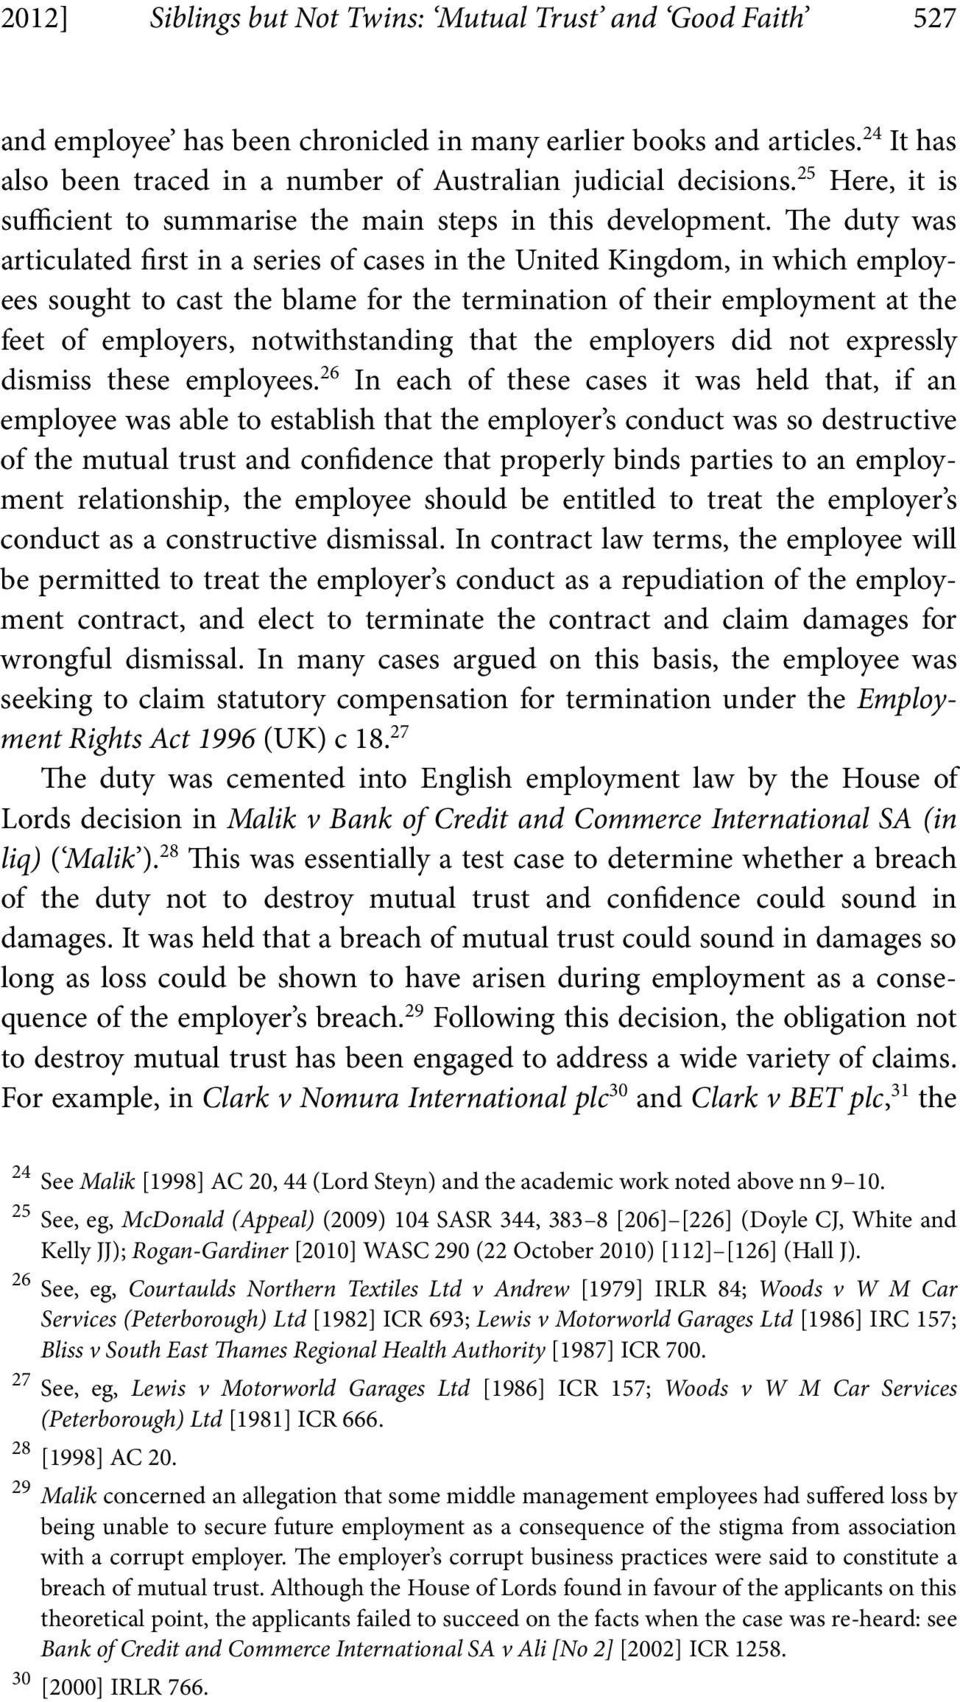 The duty was articulated first in a series of cases in the United Kingdom, in which employees sought to cast the blame for the termination of their employment at the feet of employers,